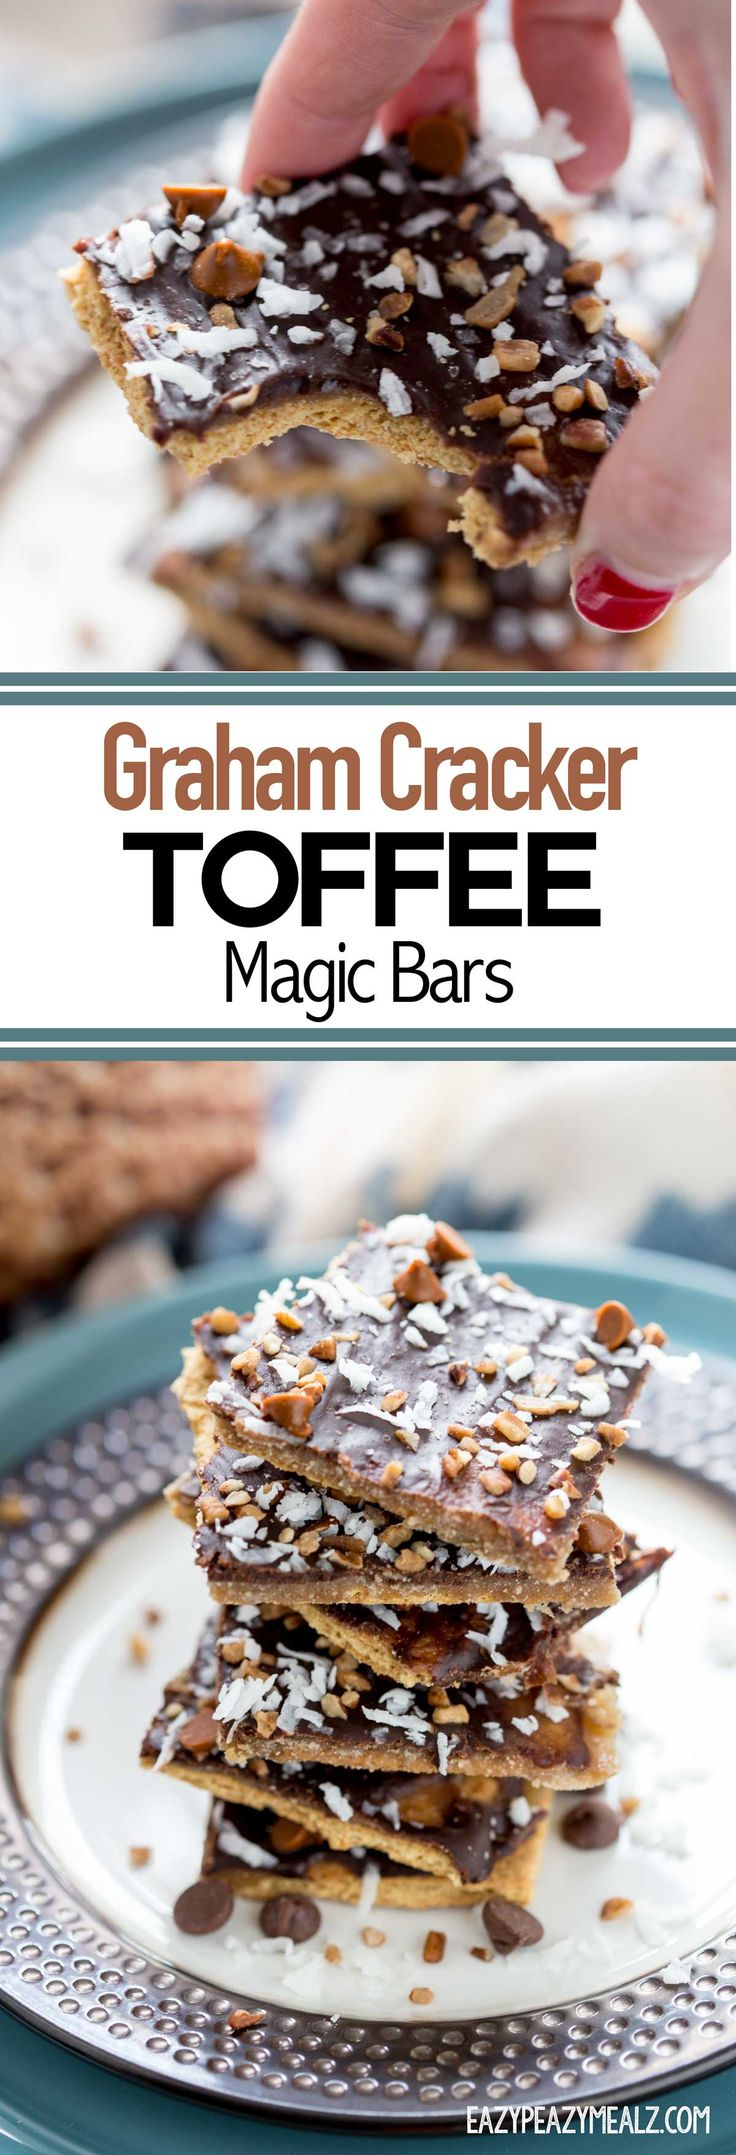 Graham Cracker Toffee Magic Bars are so easy to make and are seriously tasty! Perfect for holiday parties. #ad #CG #ThisisWholesome - Eazy Peazy Mealz